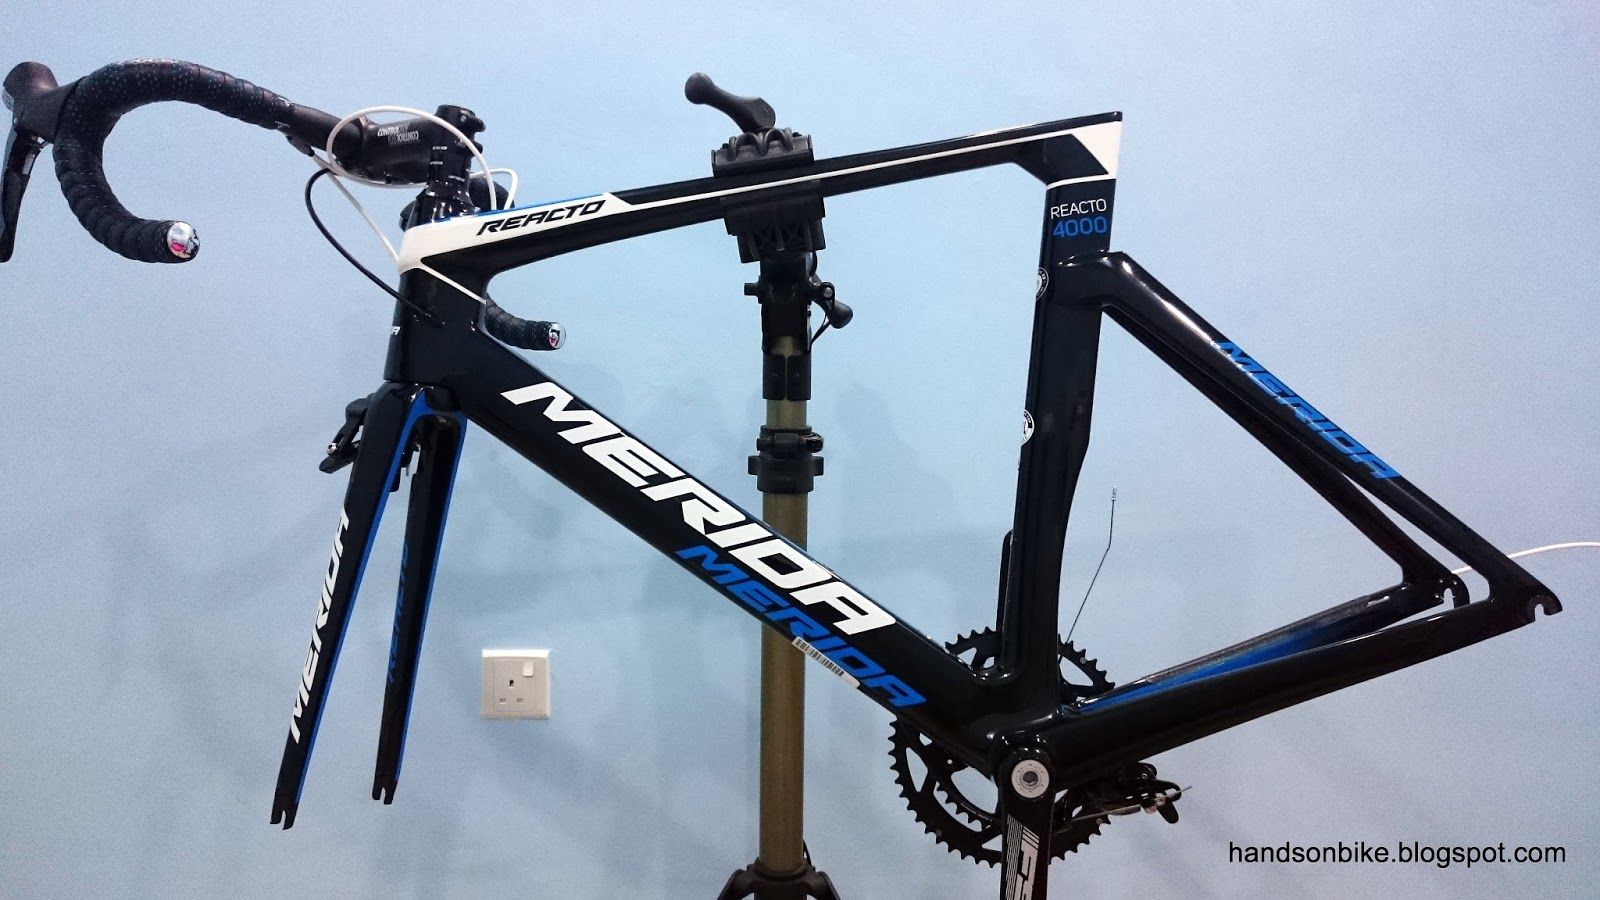 Hands On Bike: Merida Reacto 4000: Part 1 - Introduction and Disassembly